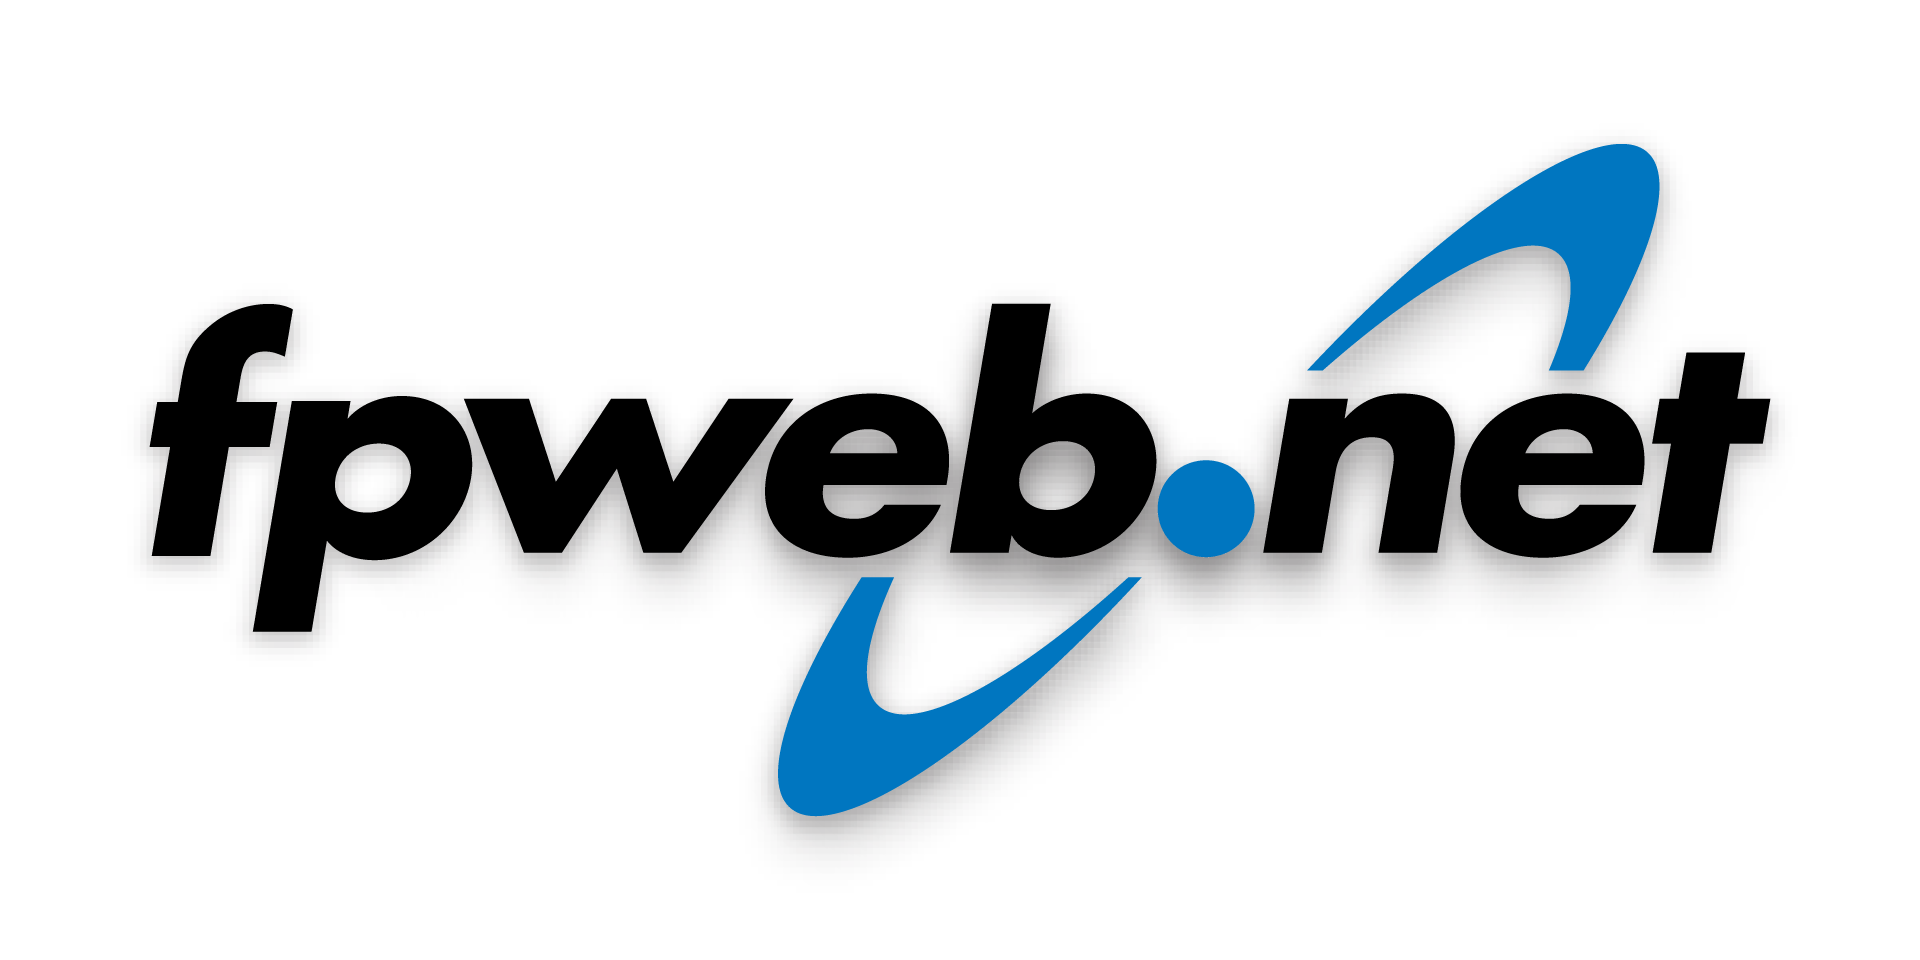 Fpweb.net Logo - Full Color